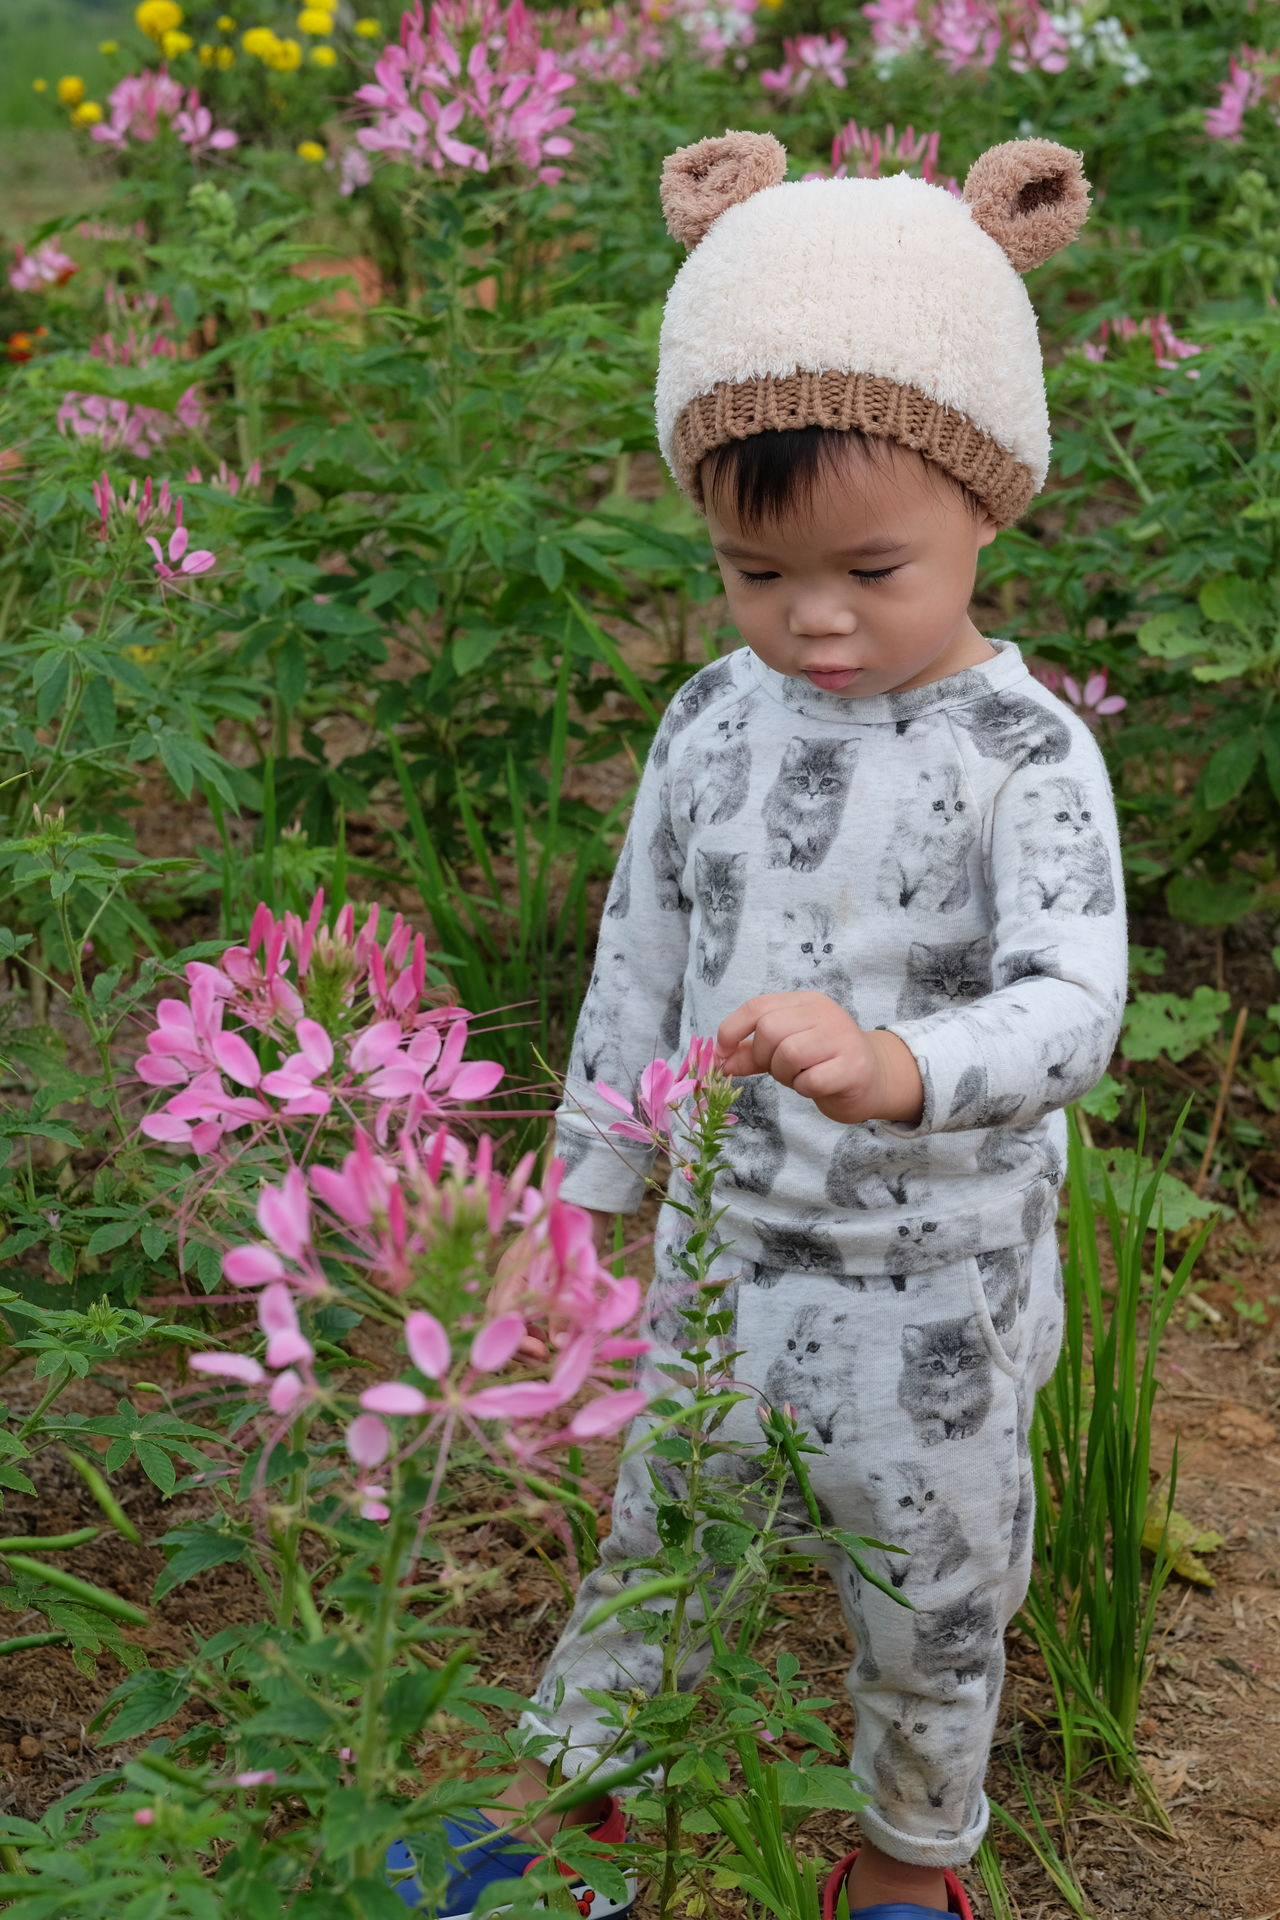 Childhood Cute Day Flower Flower Head Fragility Freshness Front View Full Length Grass Growth Innocence Lifestyles Nature One Person Outdoors Plant Real People Standing